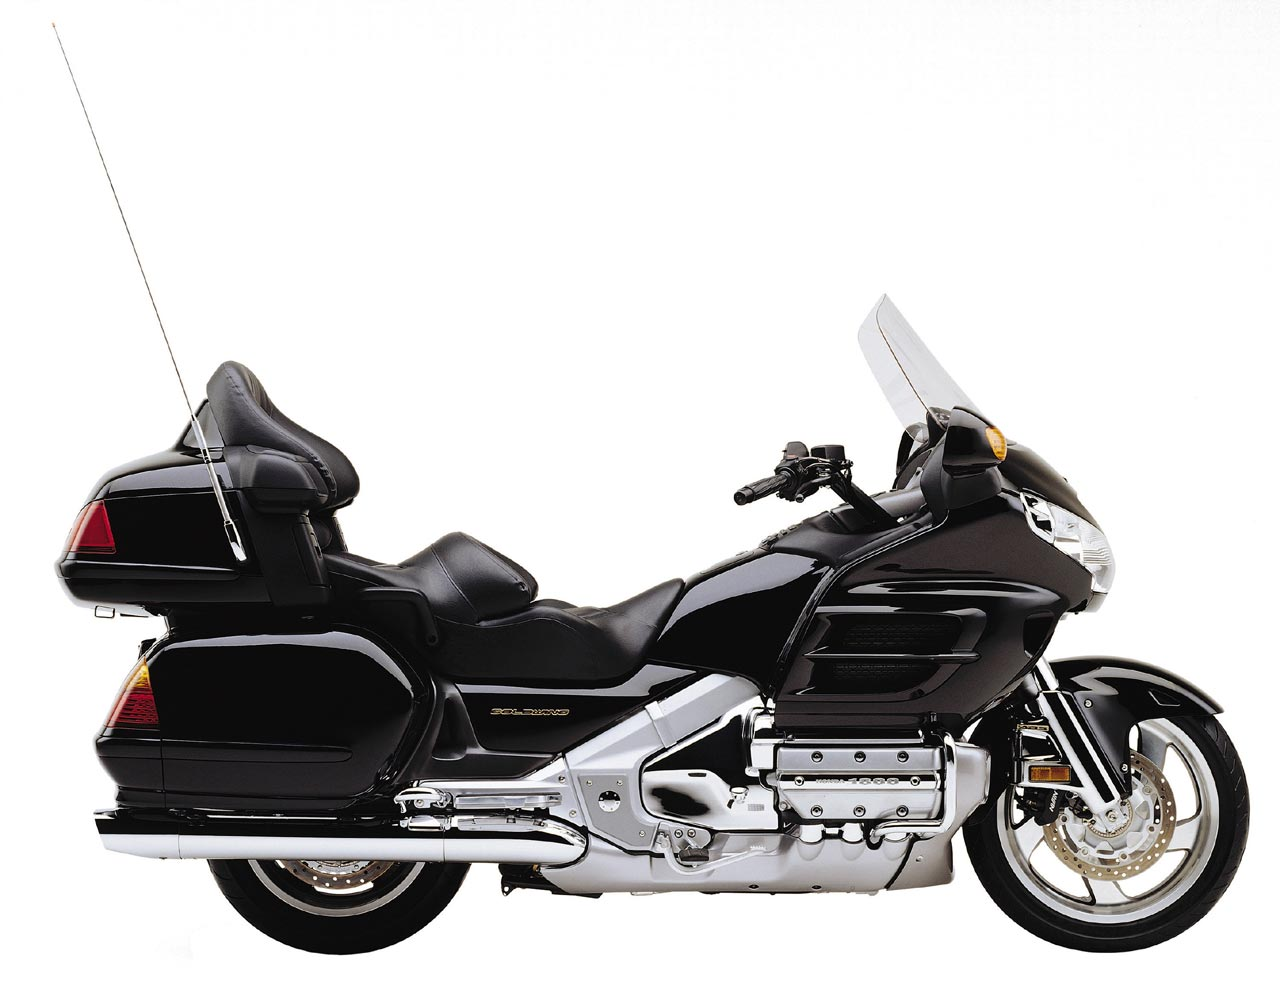 2002 honda gl1800a gold wing rh totalmotorcycle com 2002 honda goldwing owners manual 2002 honda goldwing manual